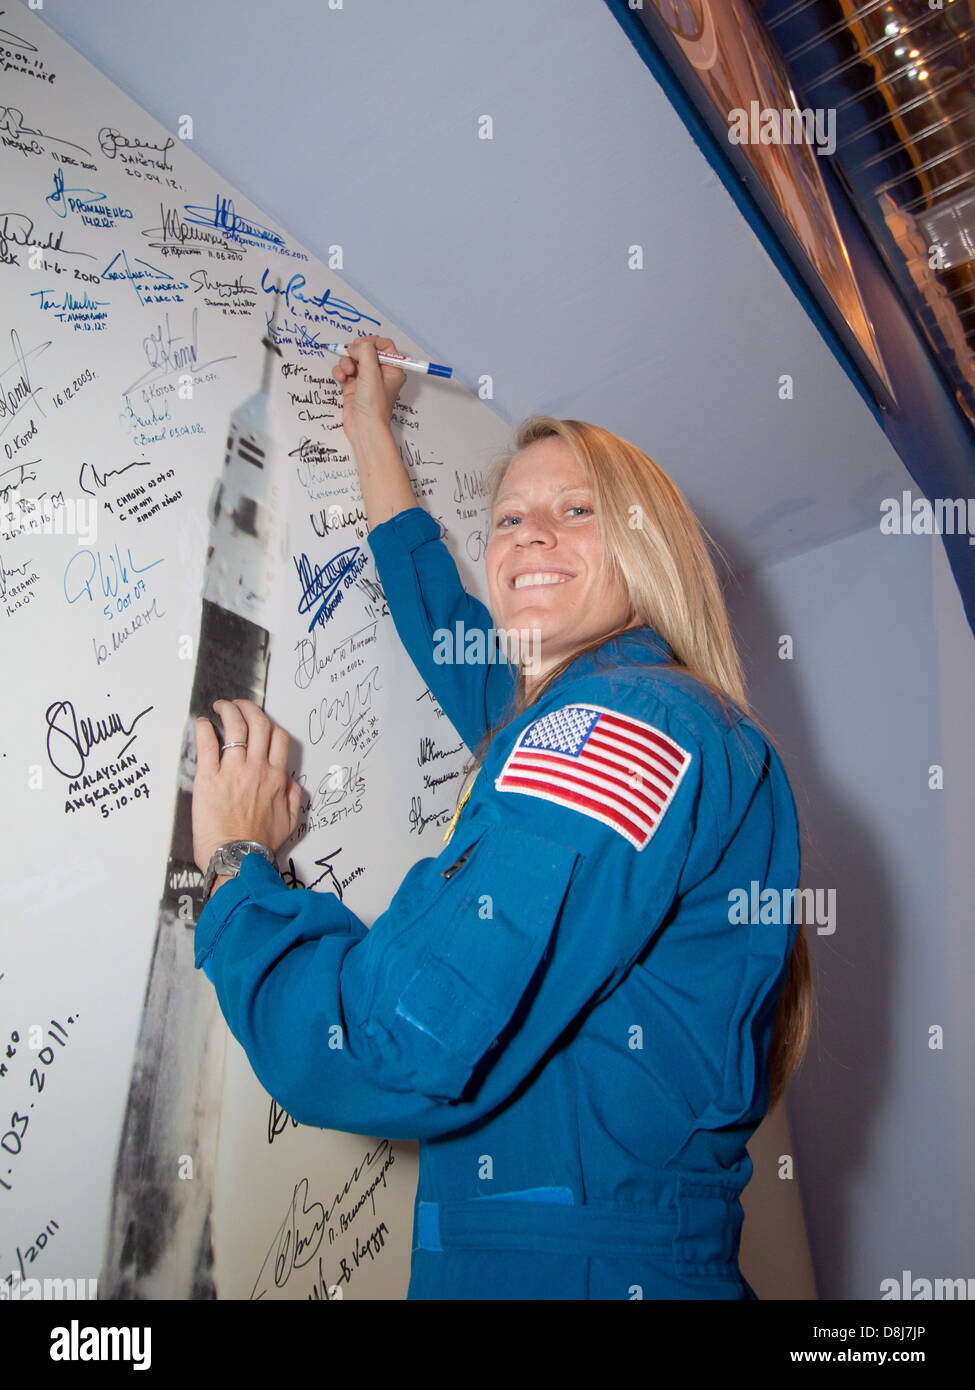 Expedition 36/37 Flight Engineer Karen Nyberg of NASA signs a mural depicting a Soyuz rocket launch in the Korolev - Stock Image